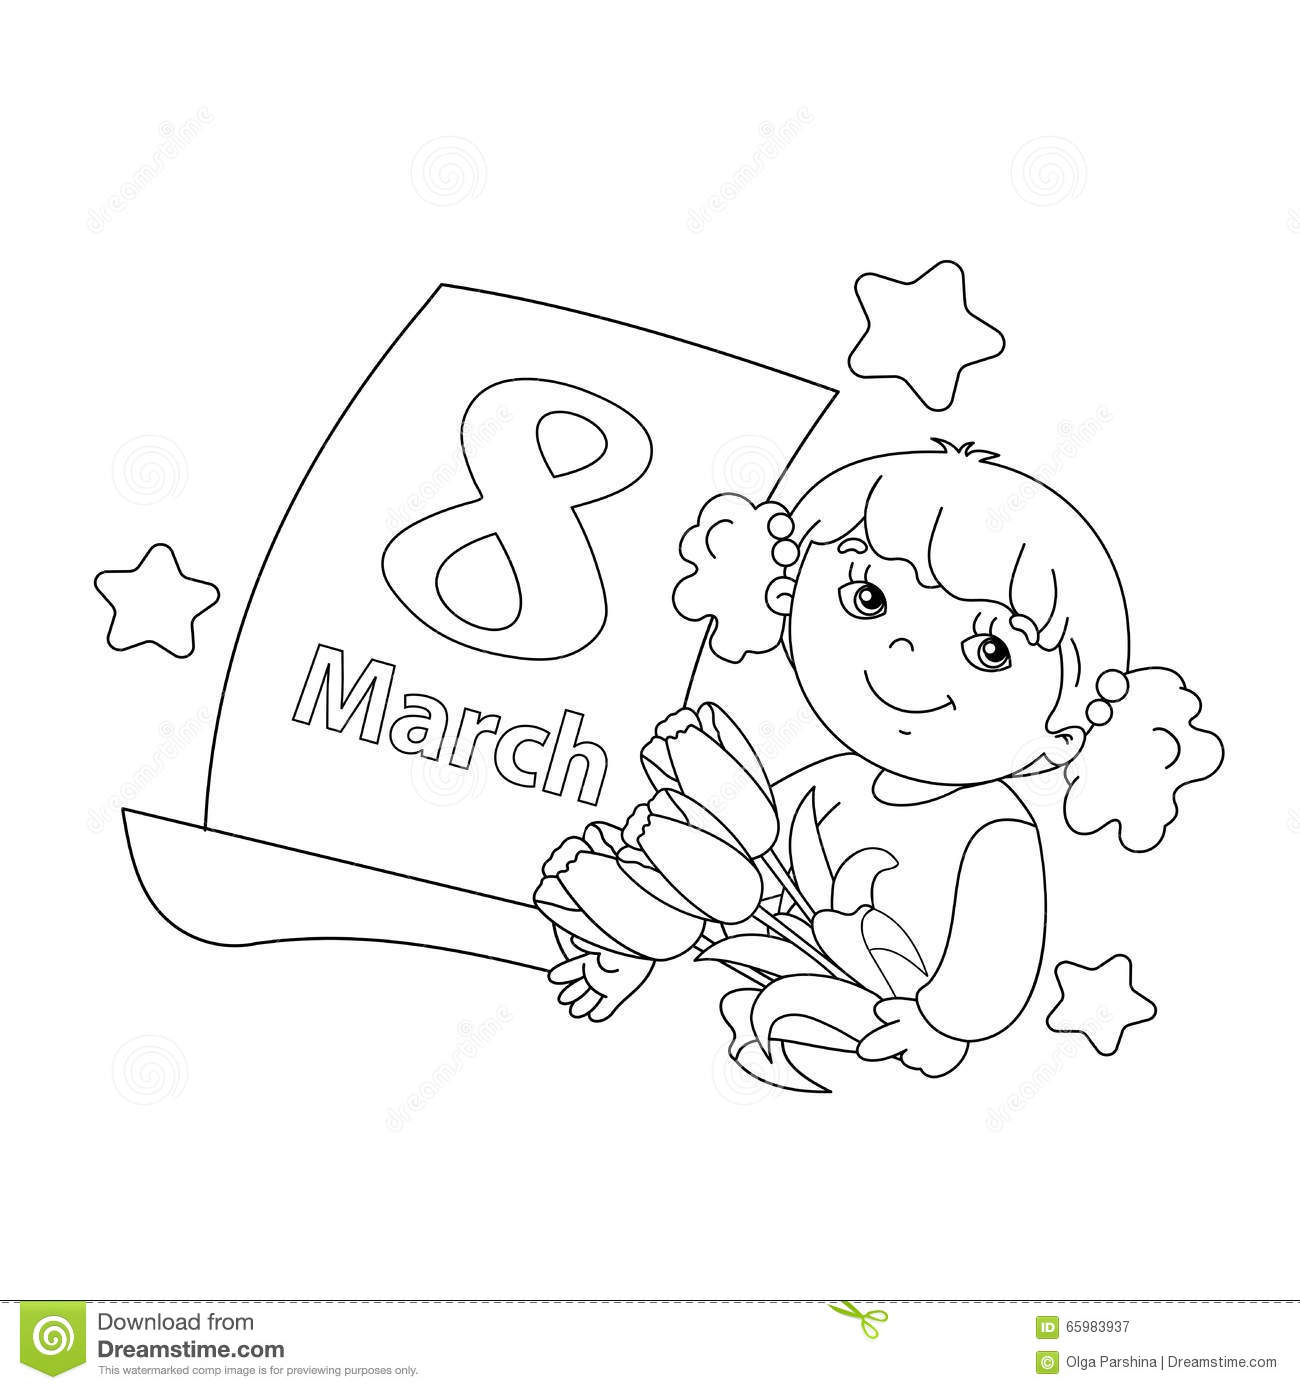 Coloring page outline of girl with flowers with calendar illustration 65983937 megapixl